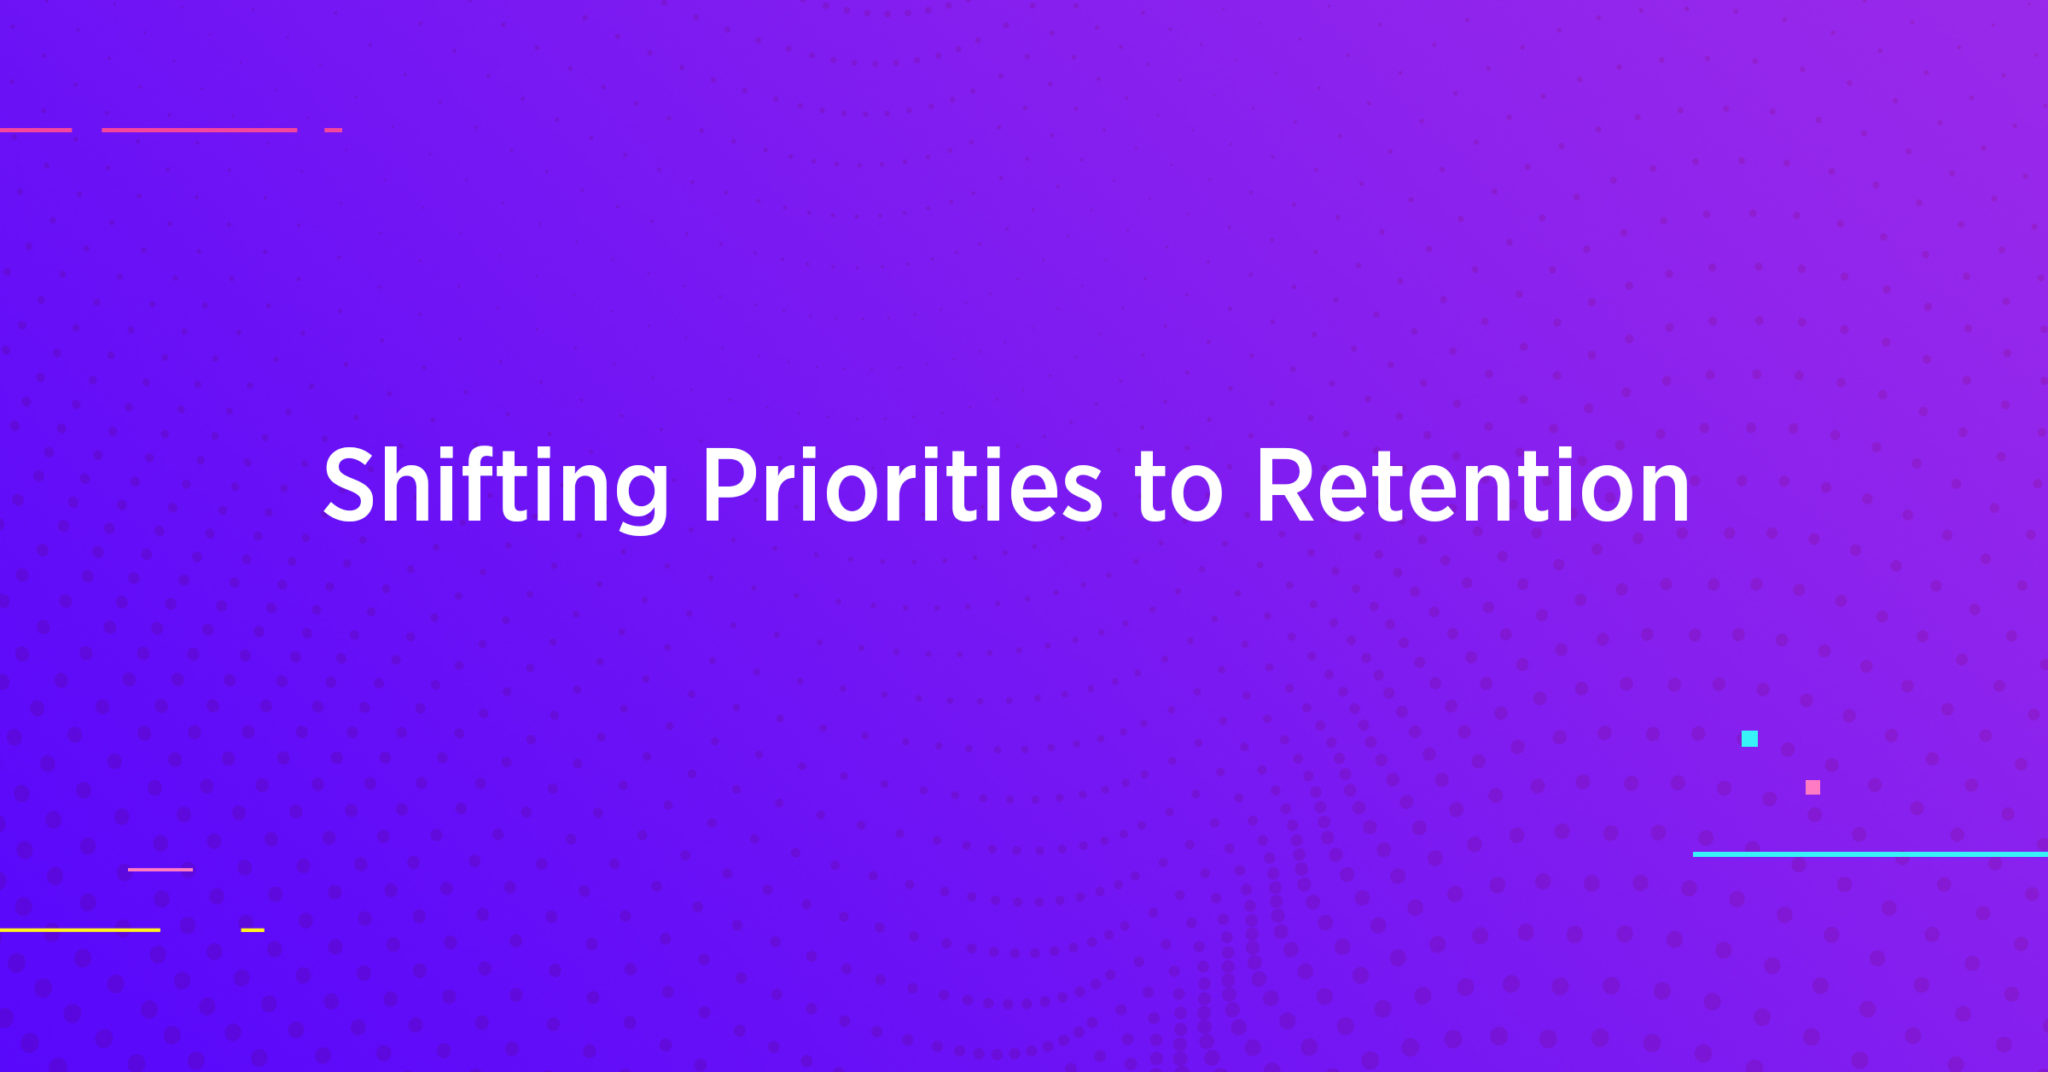 [Infographic] Shifting Priorities to Retention